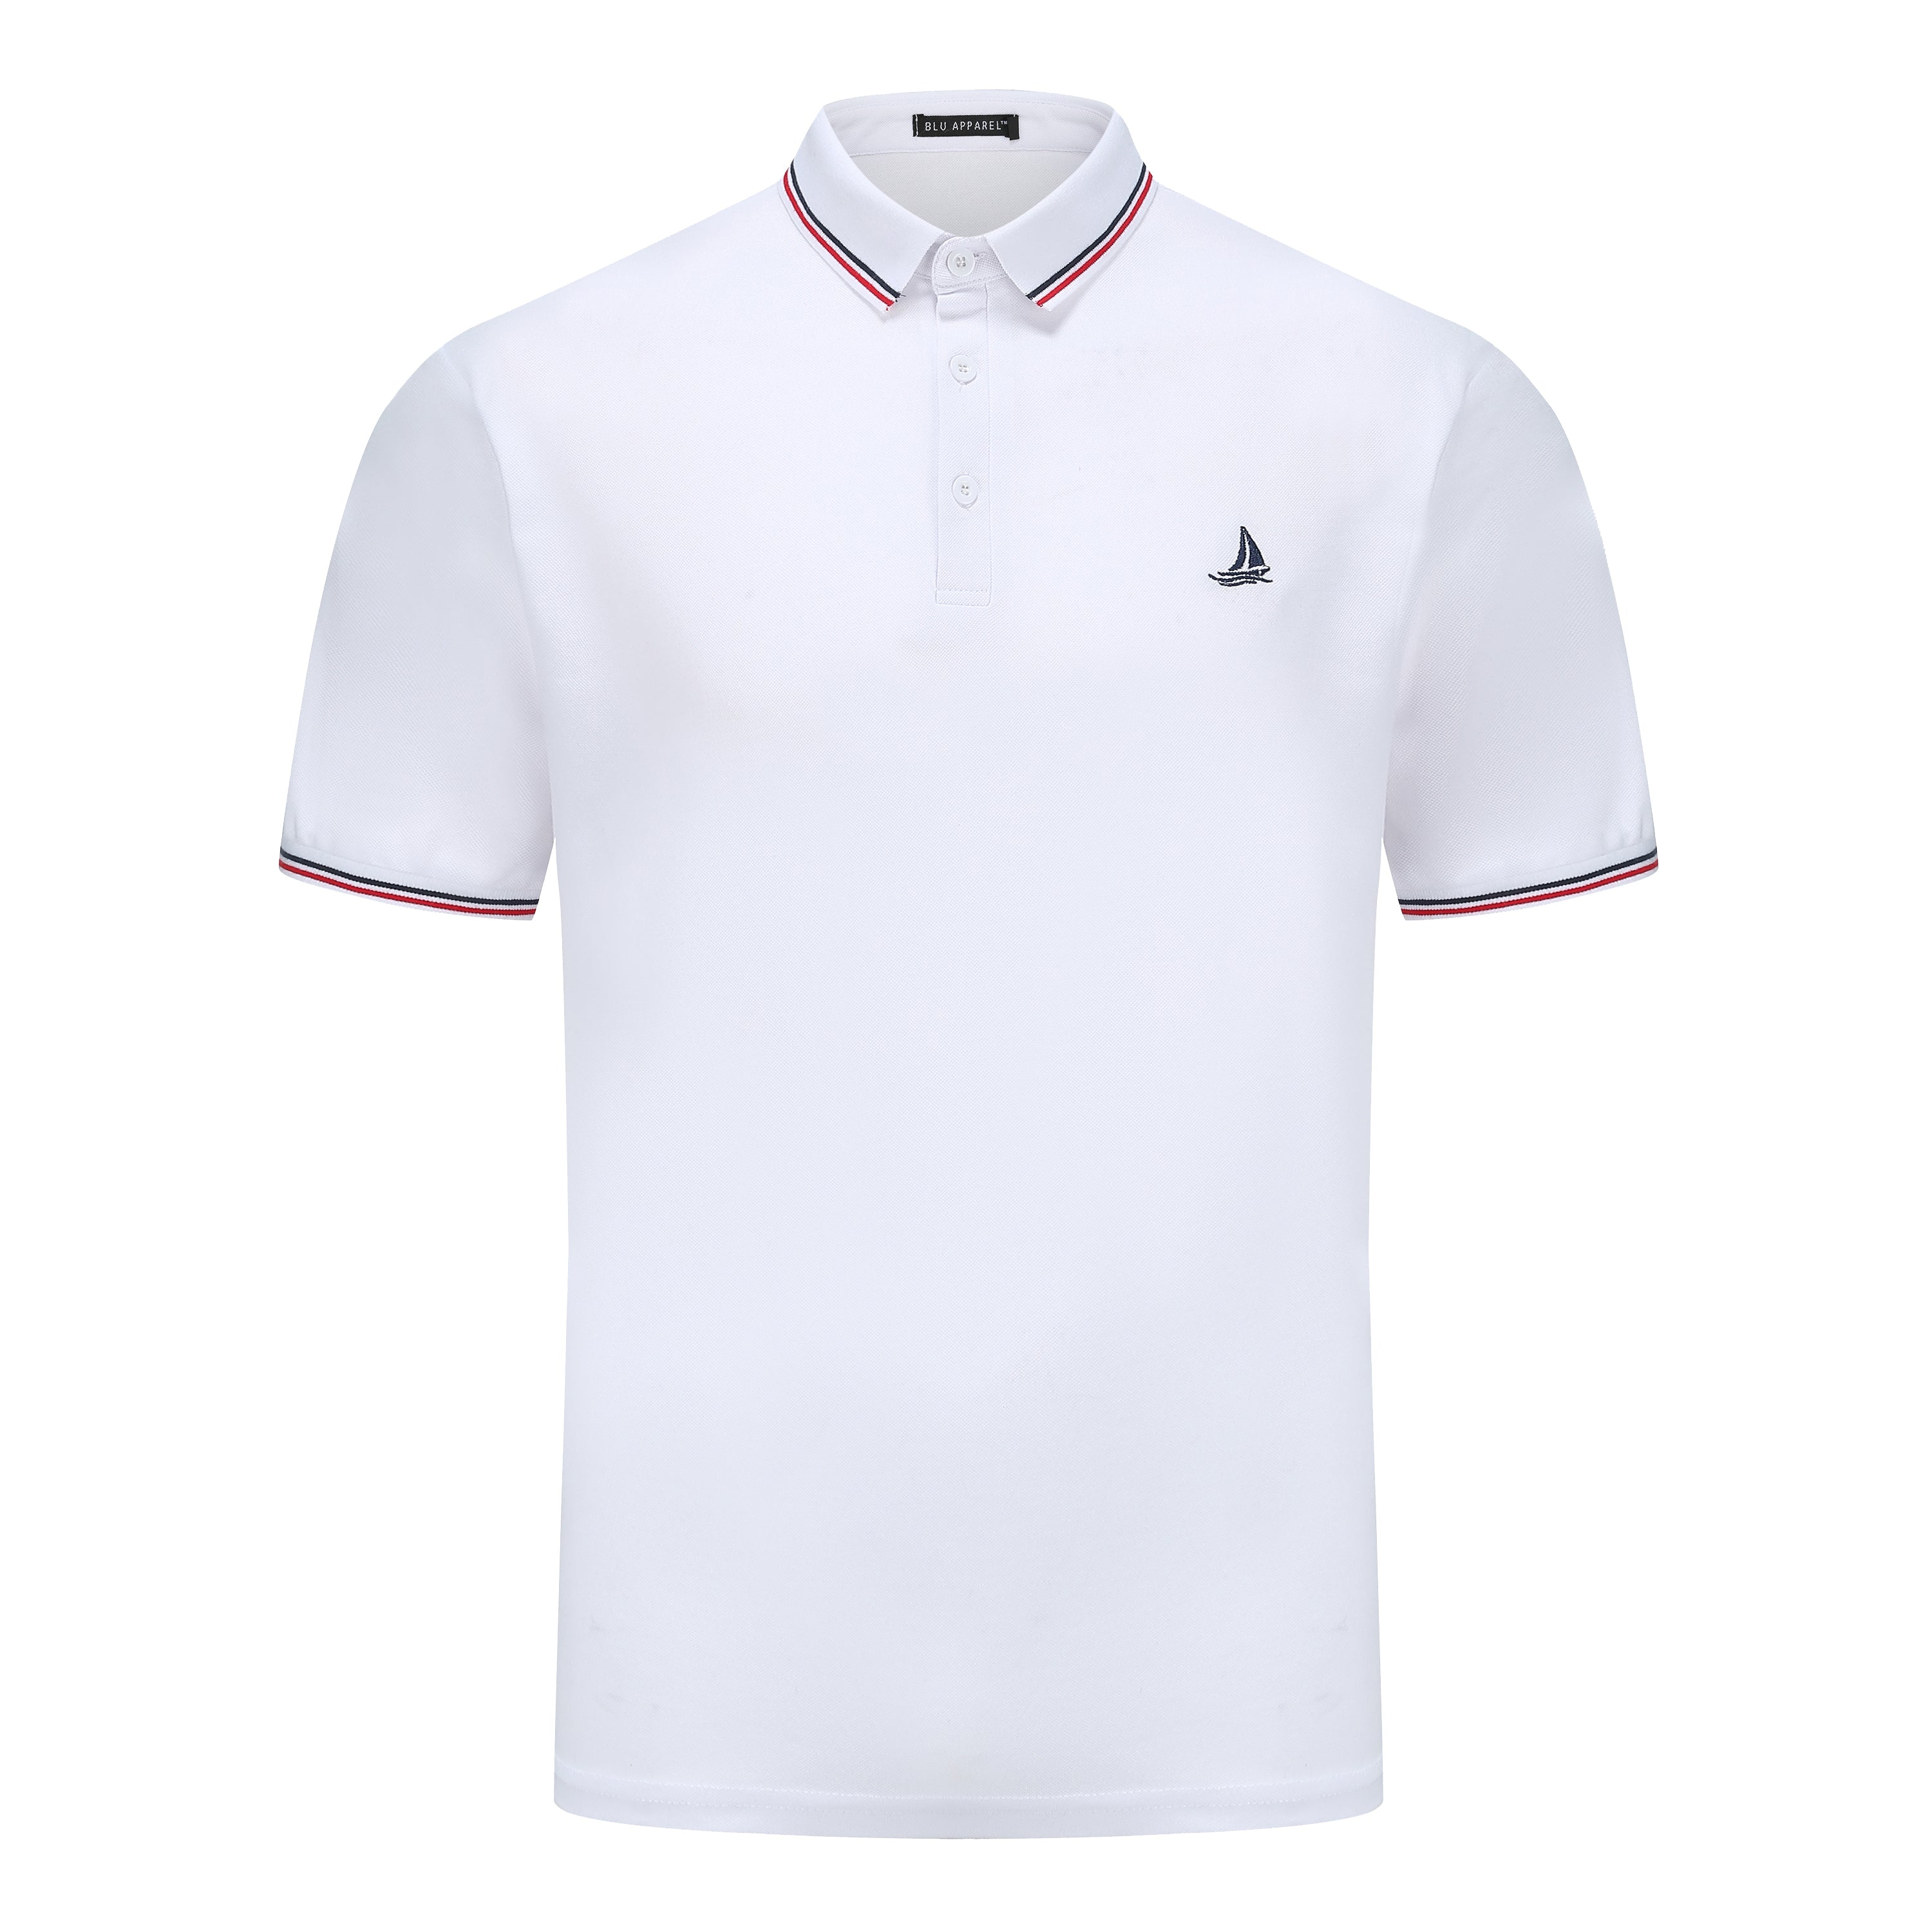 Mens Short Sleeve Polo T-Shirt - White and Navy - 2 PACK